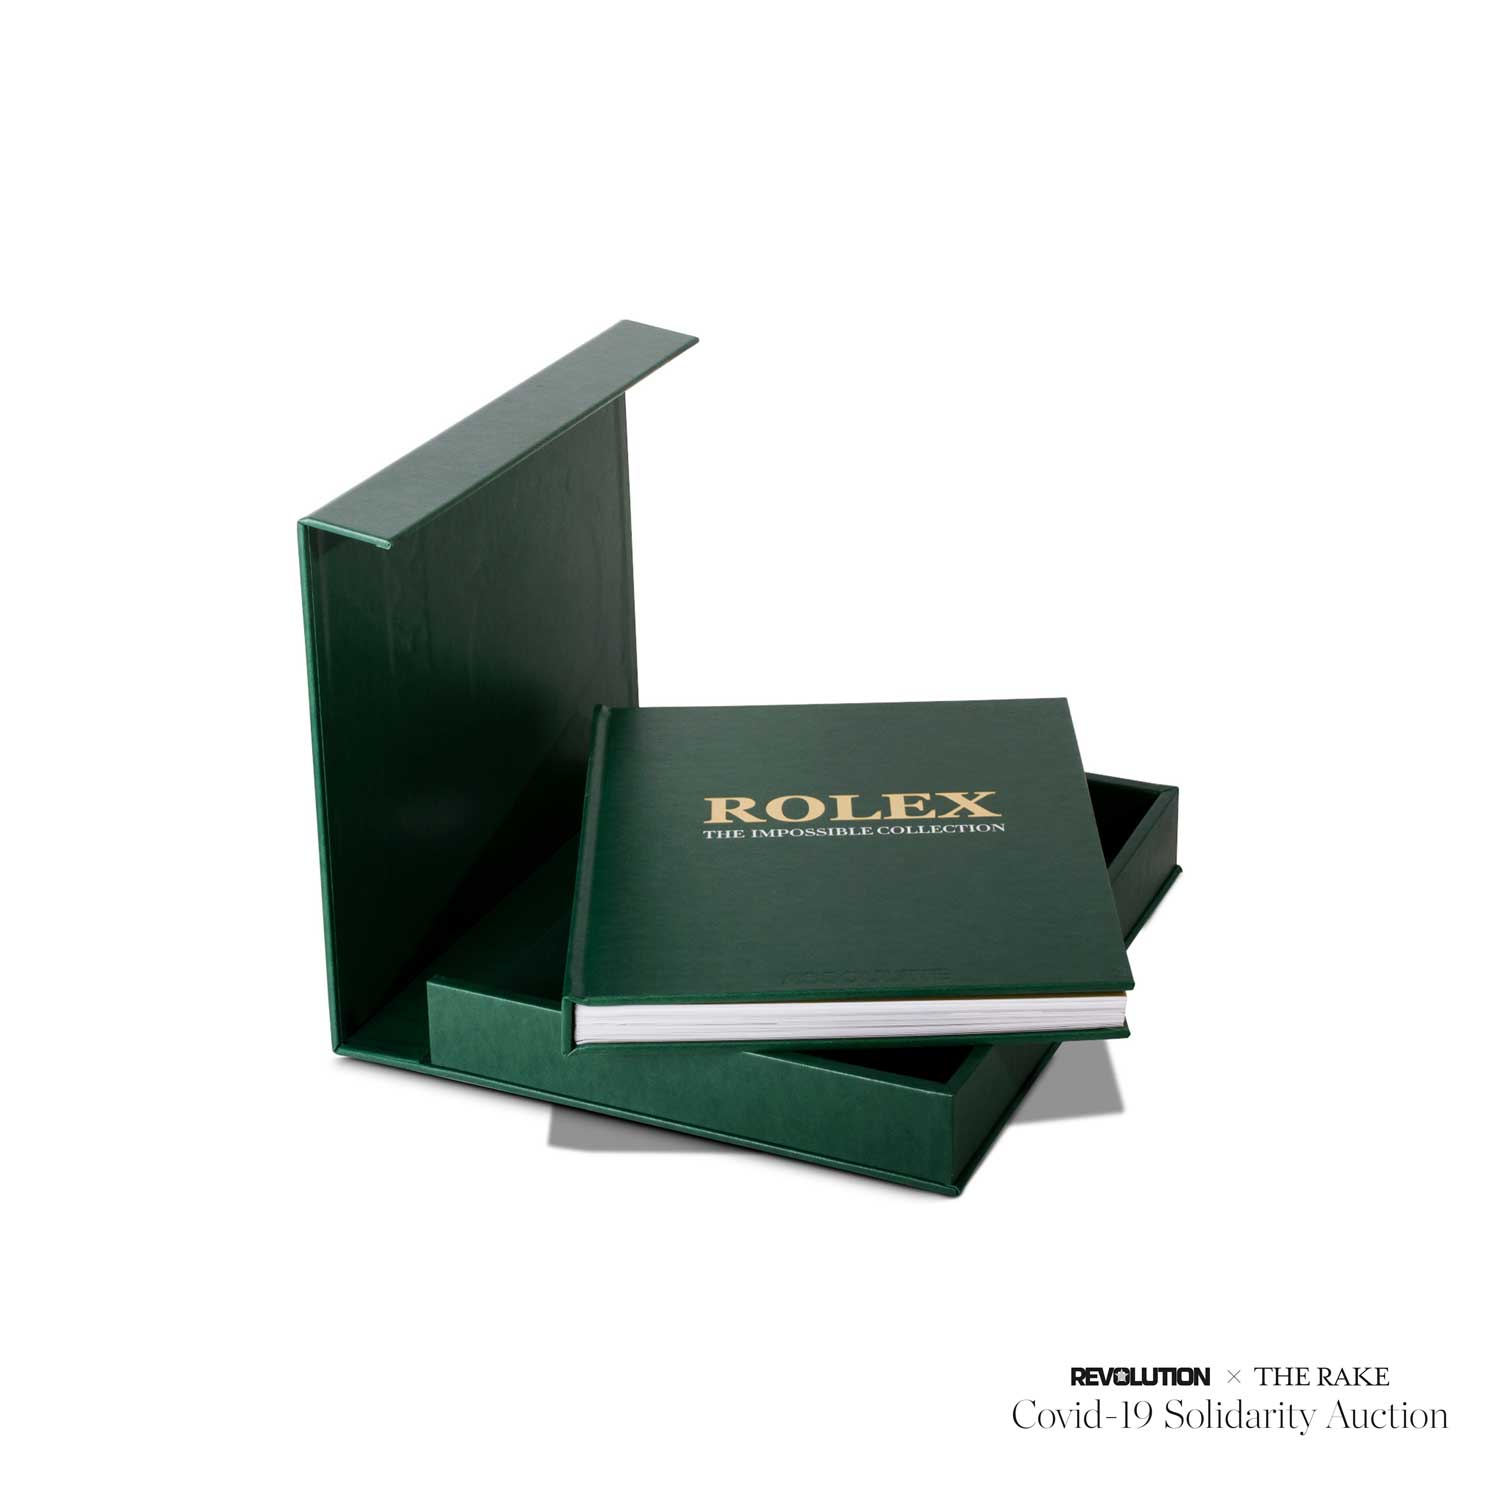 Rolex: The Impossible Collection signed by Prosper Assouline for Revolution x The Rake Covid-19 Solidarity Auction